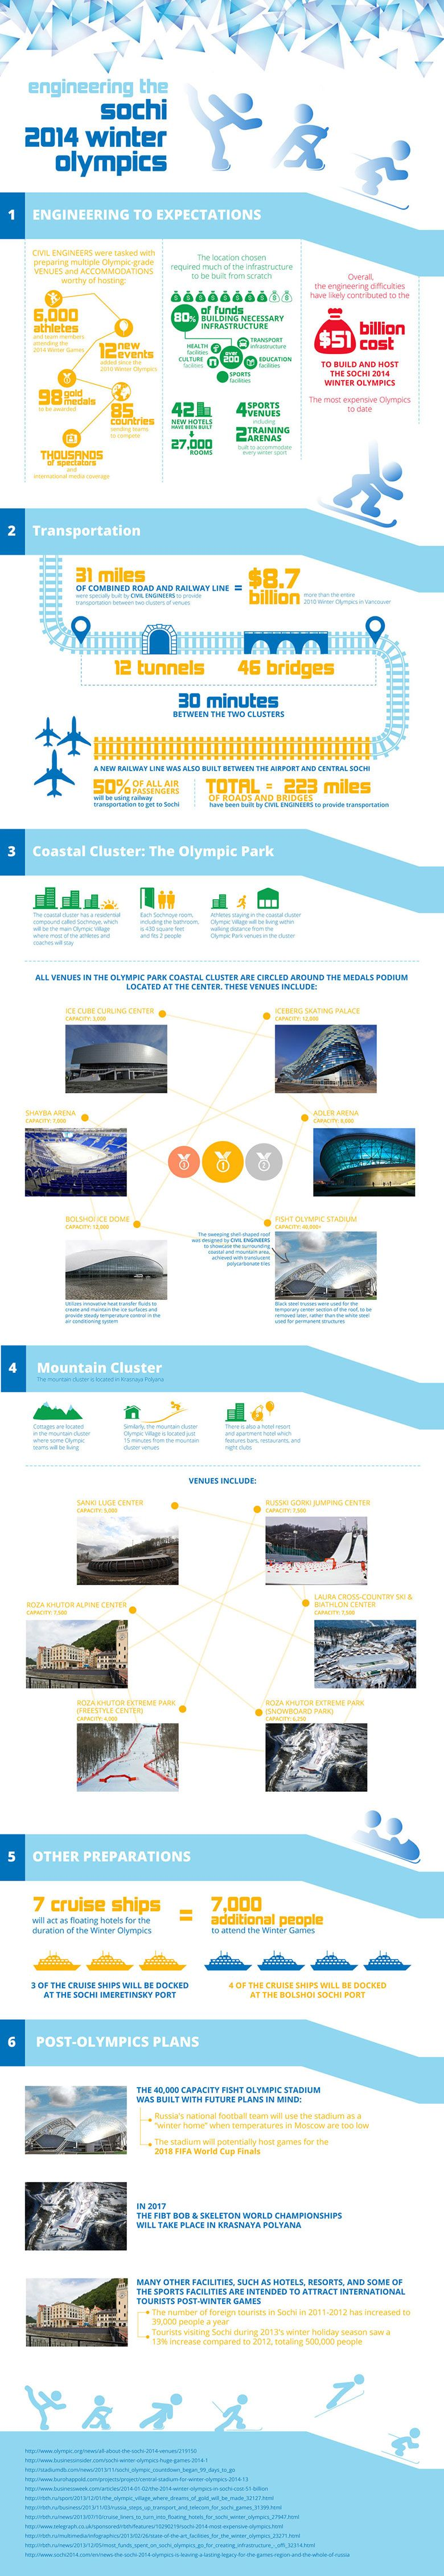 Infographic - engineering 2014 winter Olympics